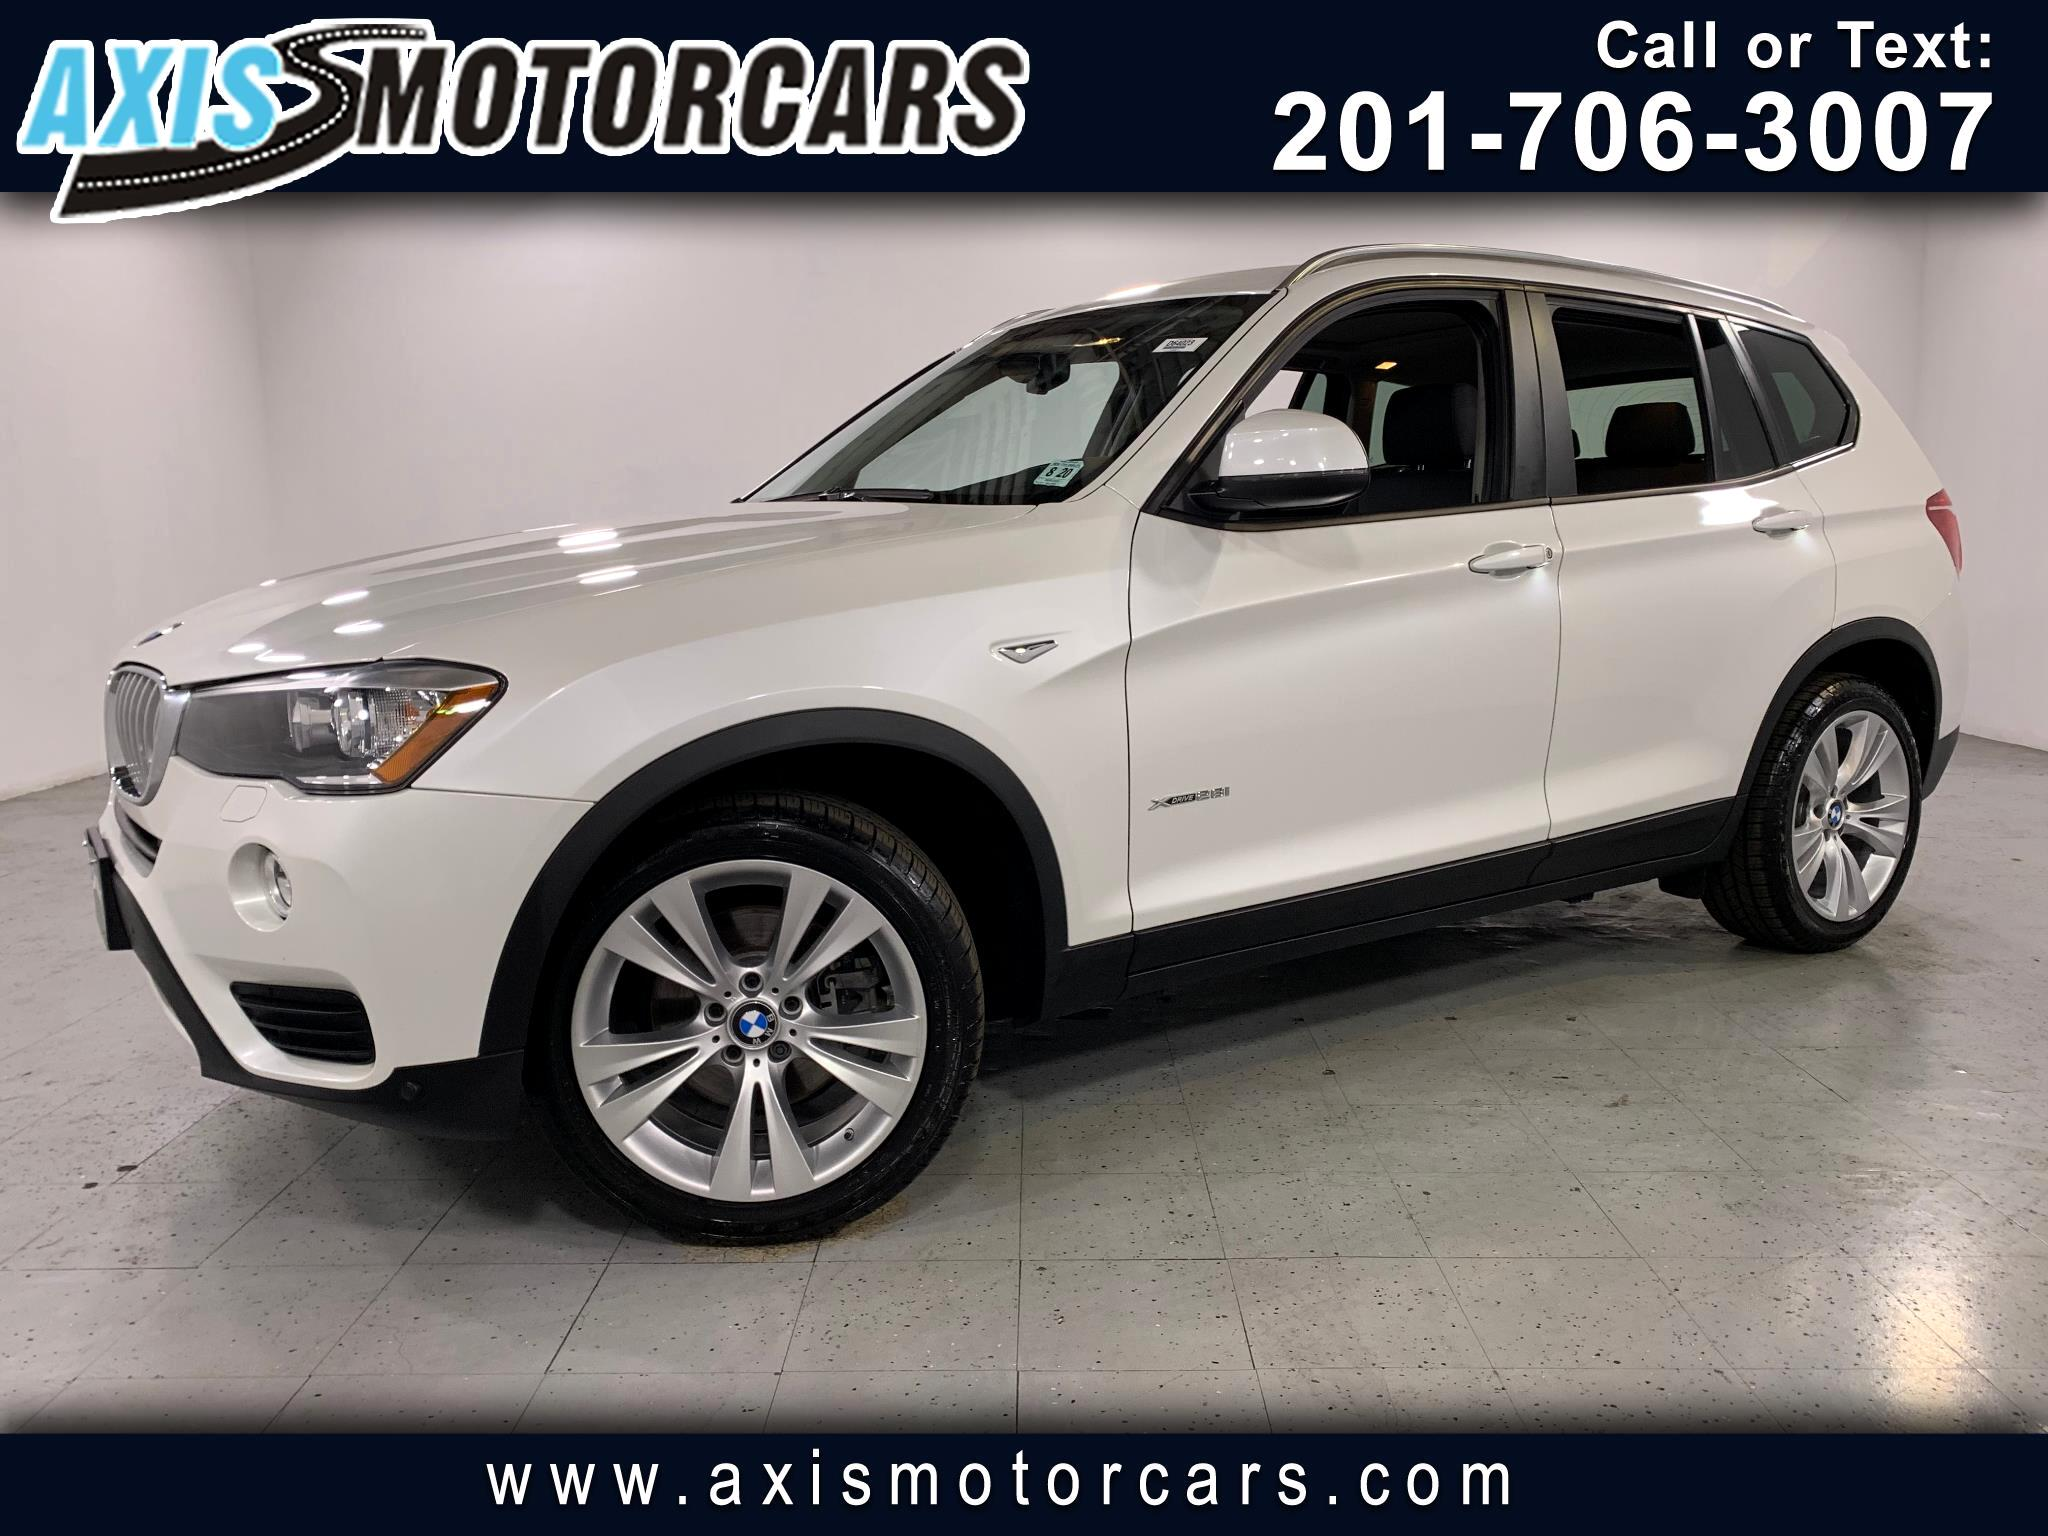 2016 BMW X3 w/Panoramic Roof Navigation